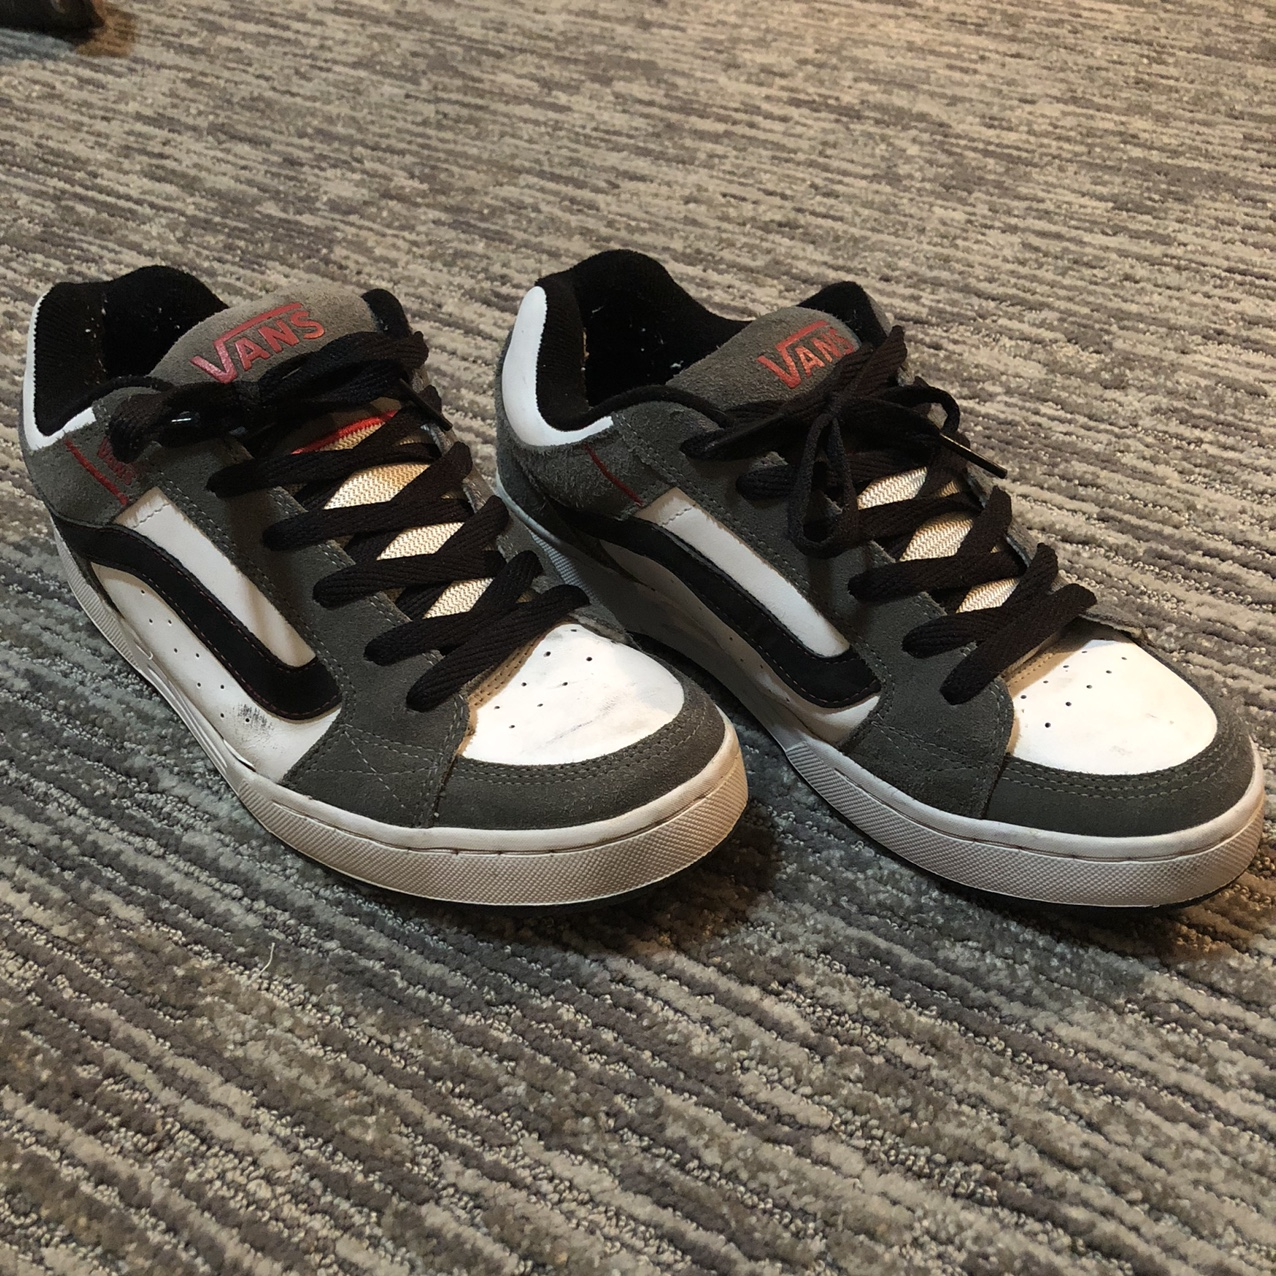 vans skate shoes early 2000s chunky as